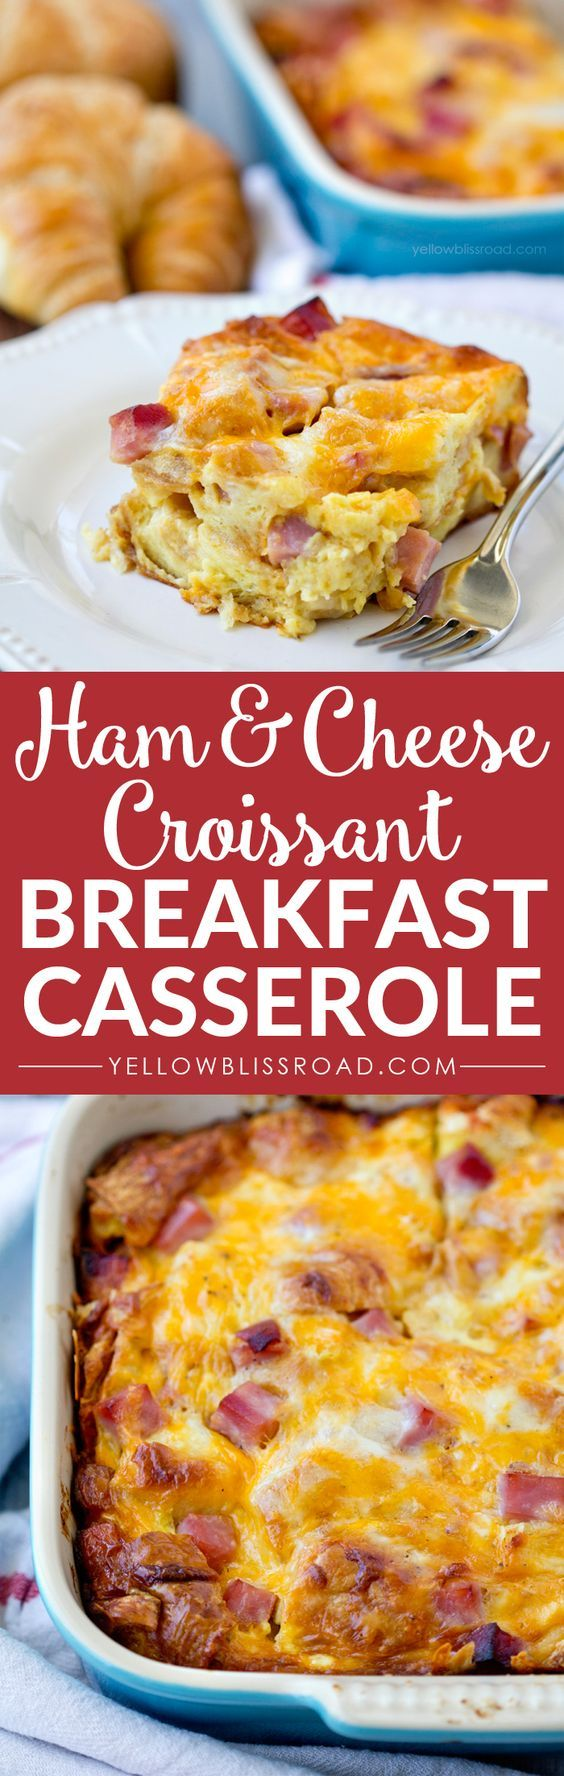 Savory, cheesy and slighty sweet, this Ham and Cheese Croissant Breakfast Casserole would be perfect for a weekend breakfast or even brunch.